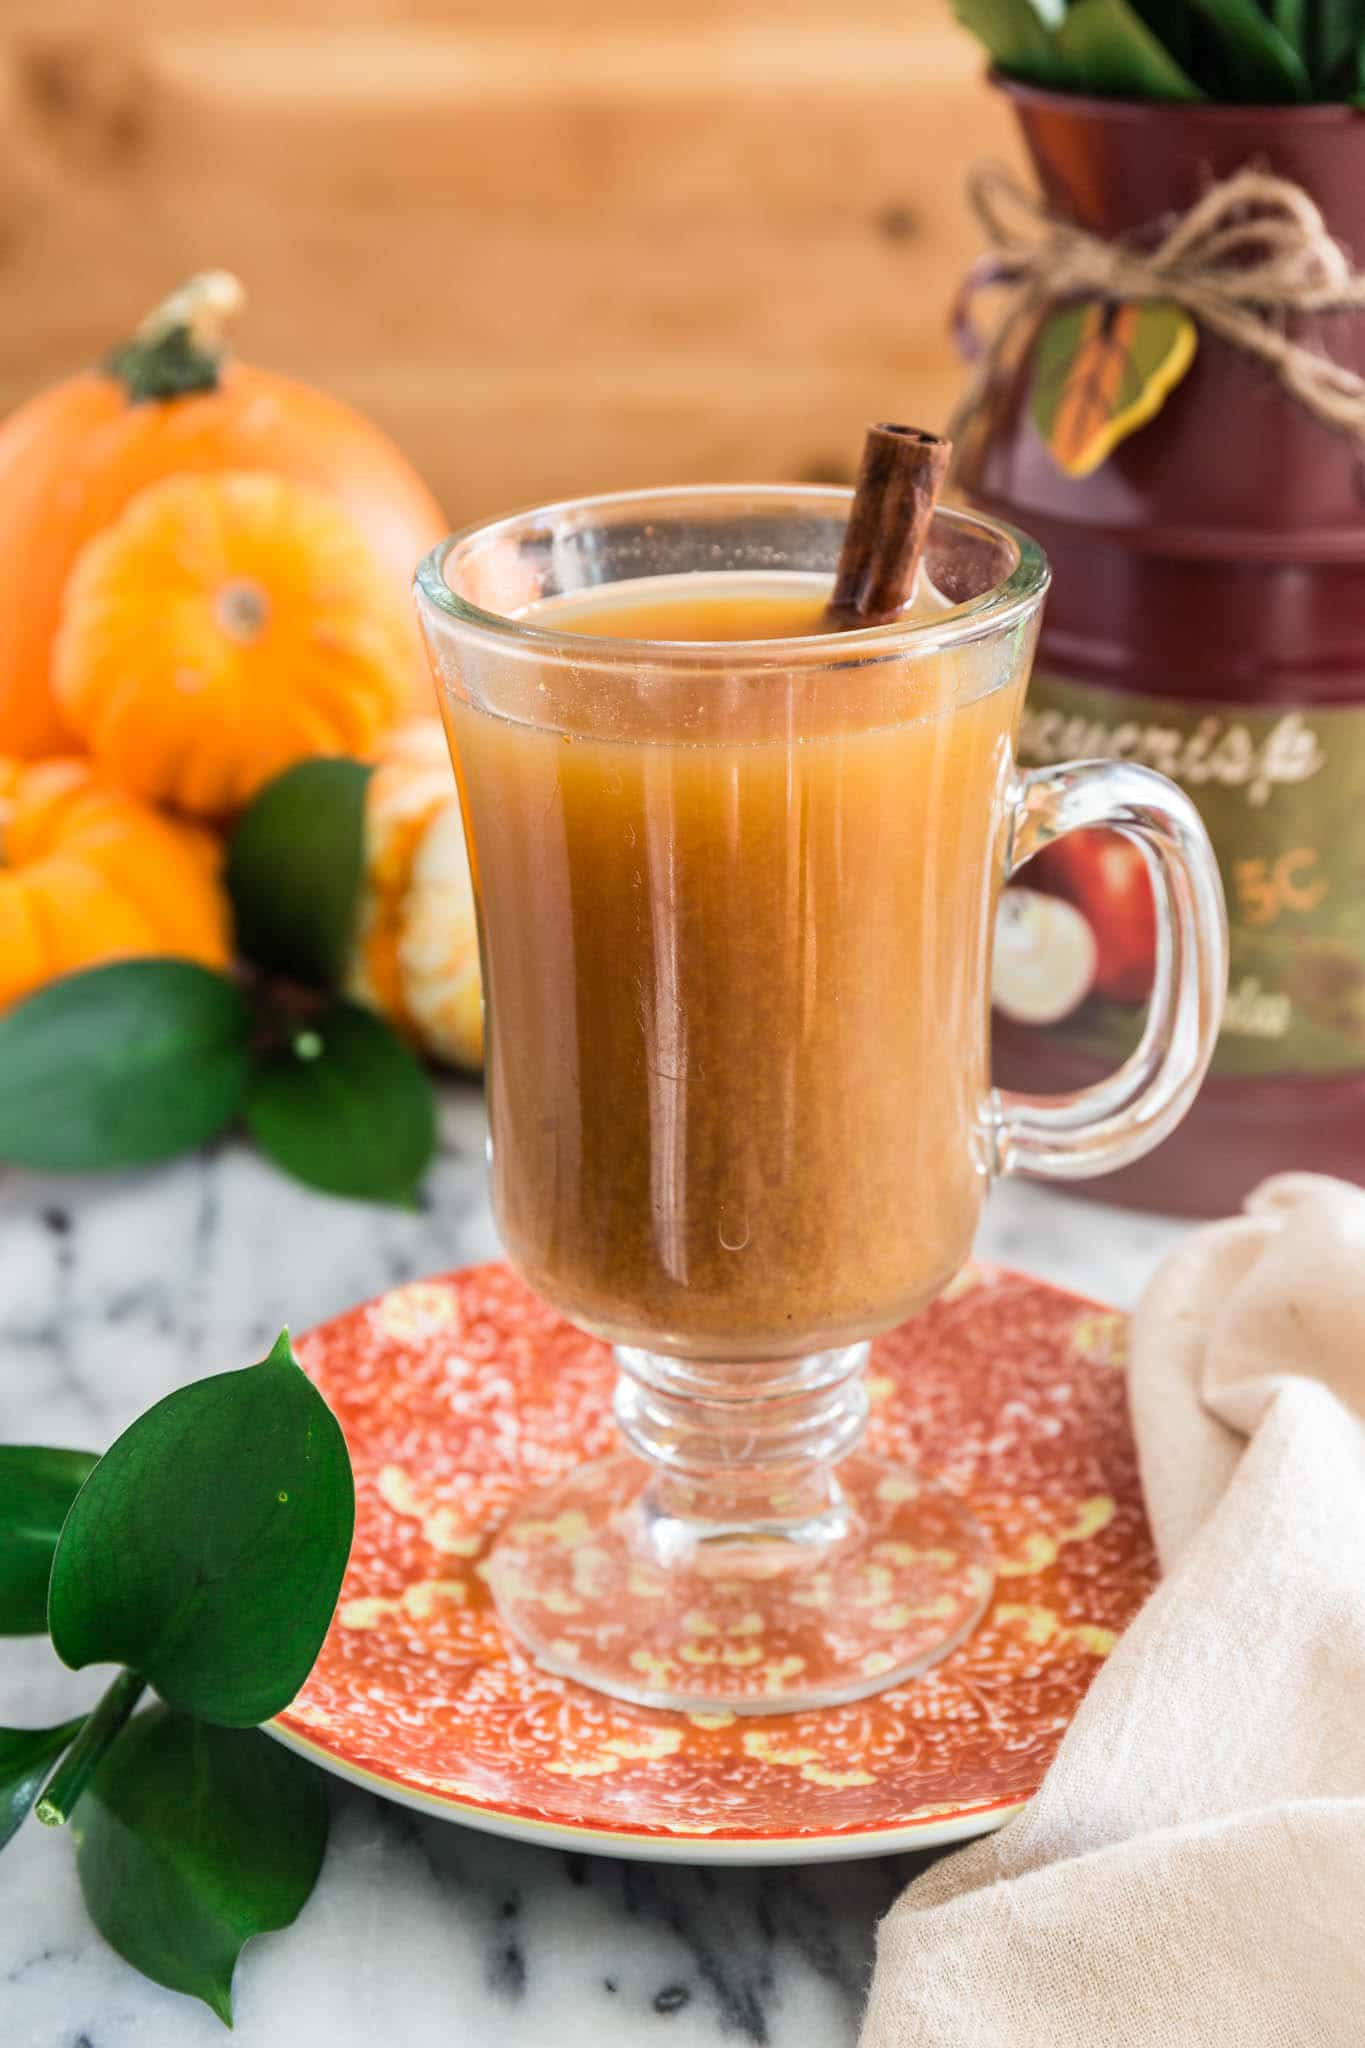 Slow Cooker Pumpkin Spiced Cider | www.oliviascuisine.com | All the cozy flavors of Fall in one drink! Made in the slow cooker, this delicious Pumpkin Spiced Cider will lift your spirits and make your house smell like happiness!